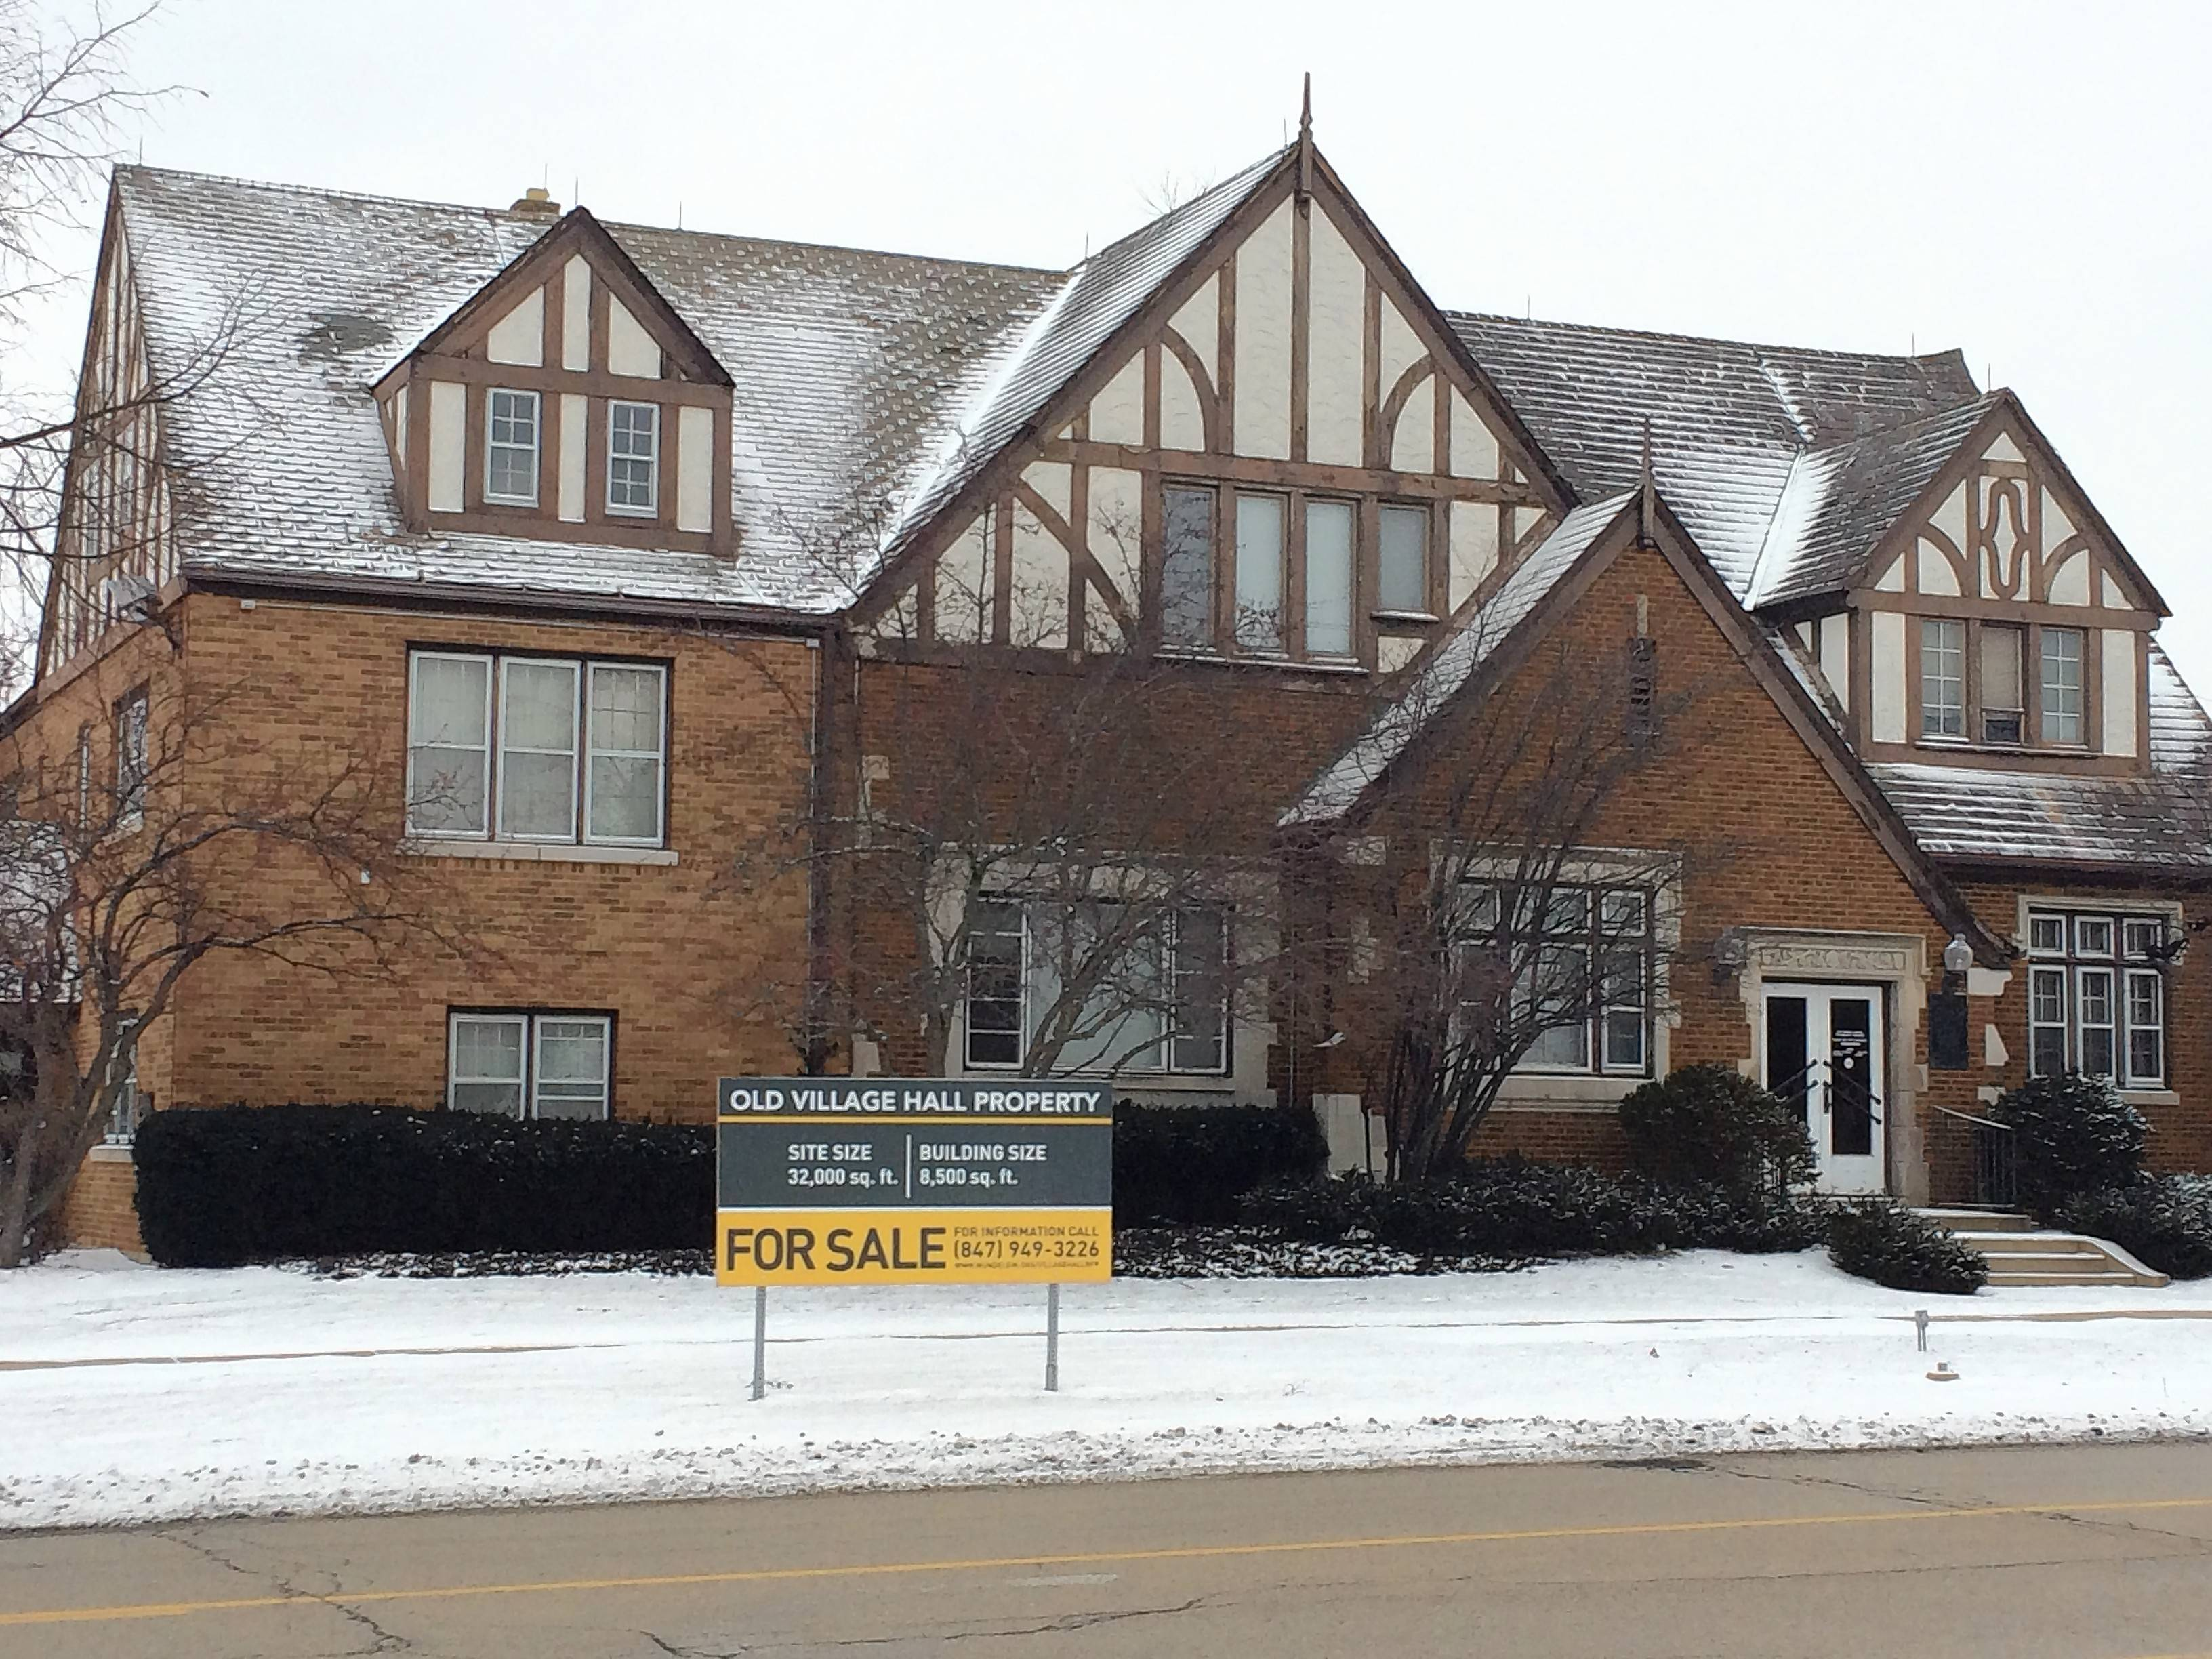 No buyers for Mundelein's former village hall